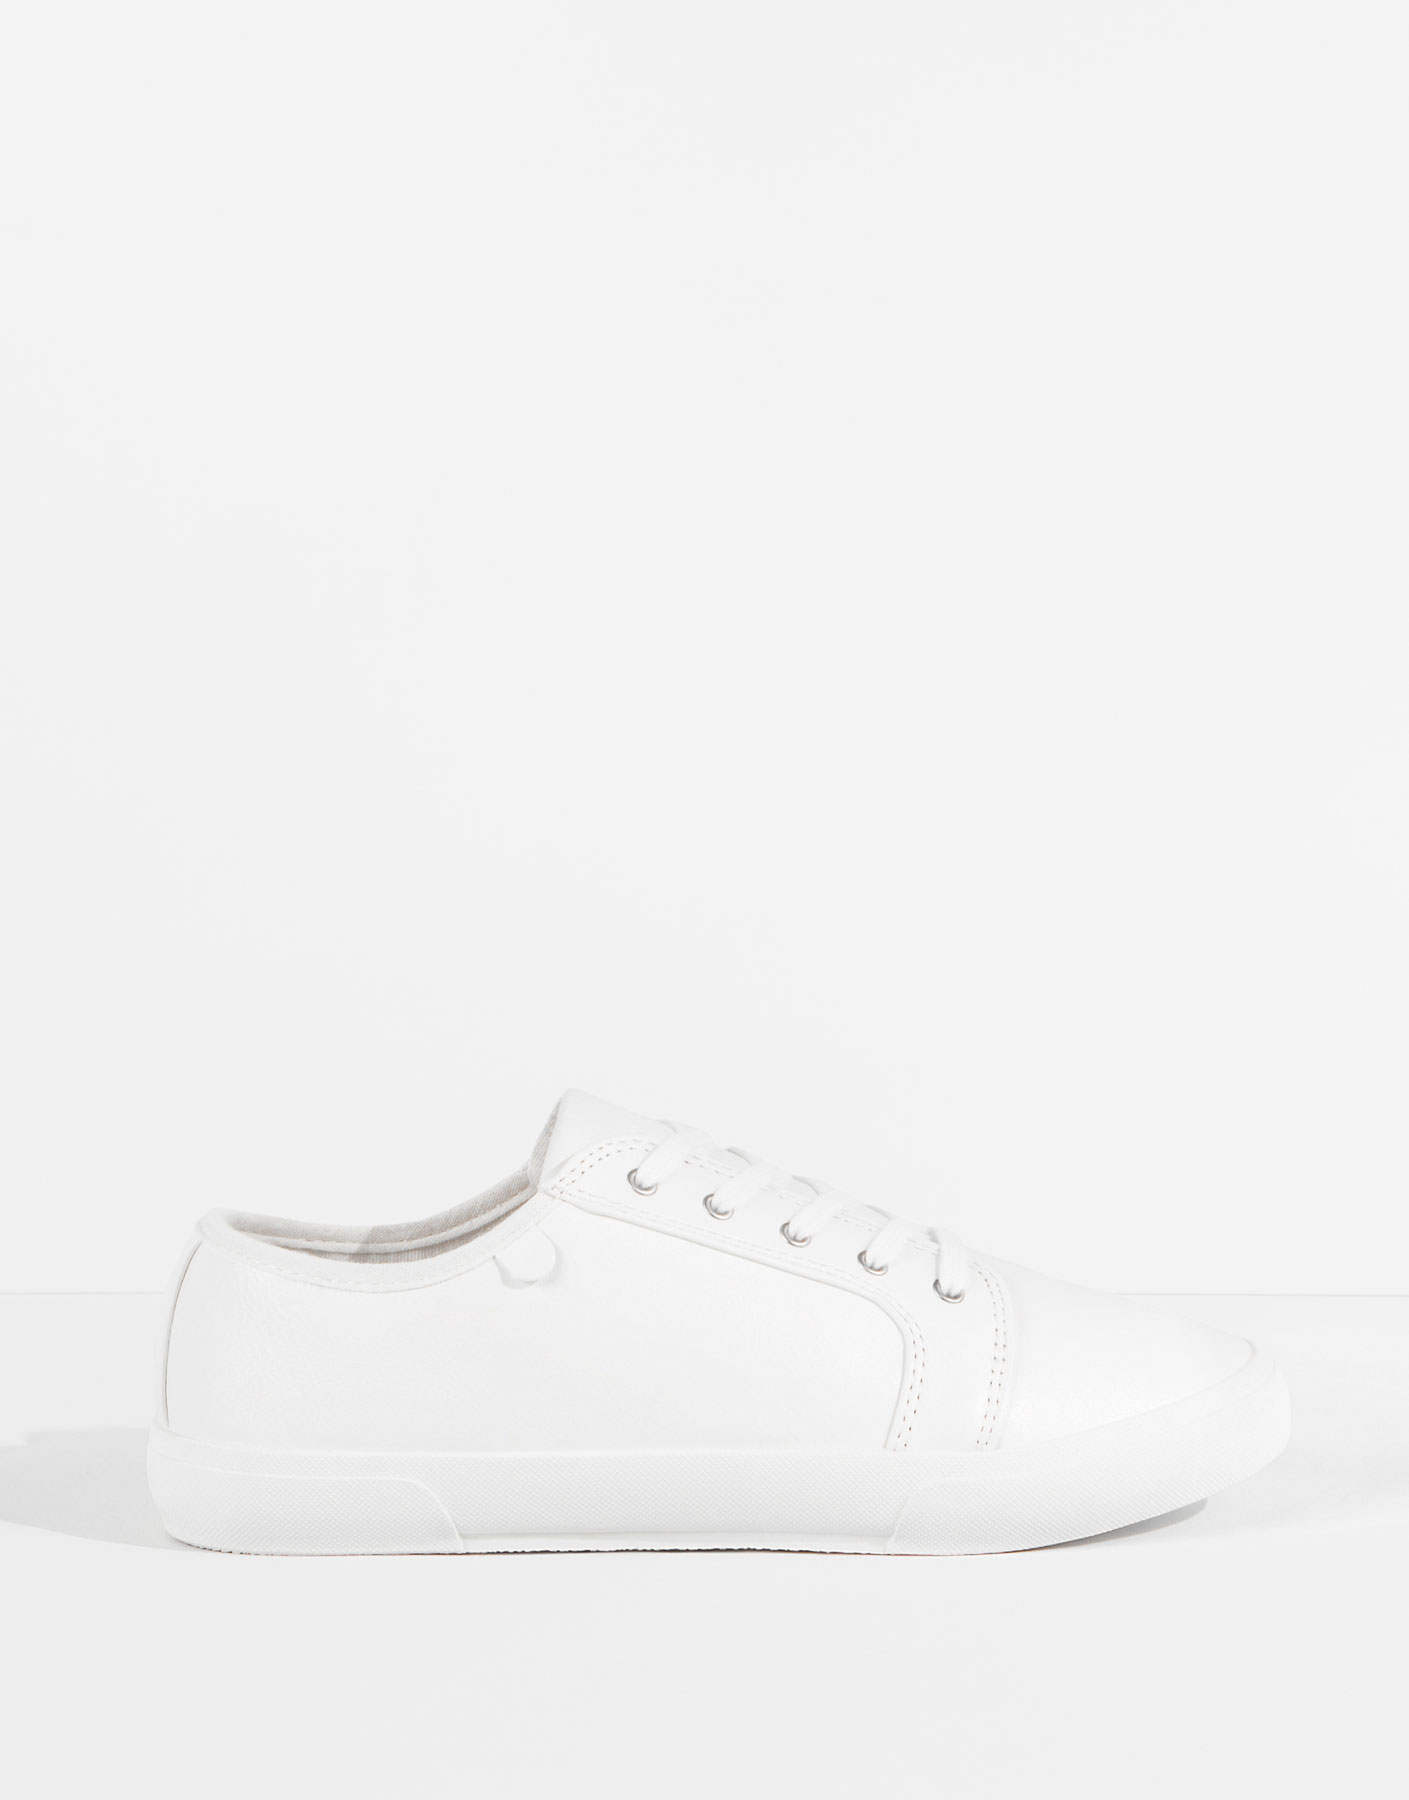 Plimsolls with toe cap